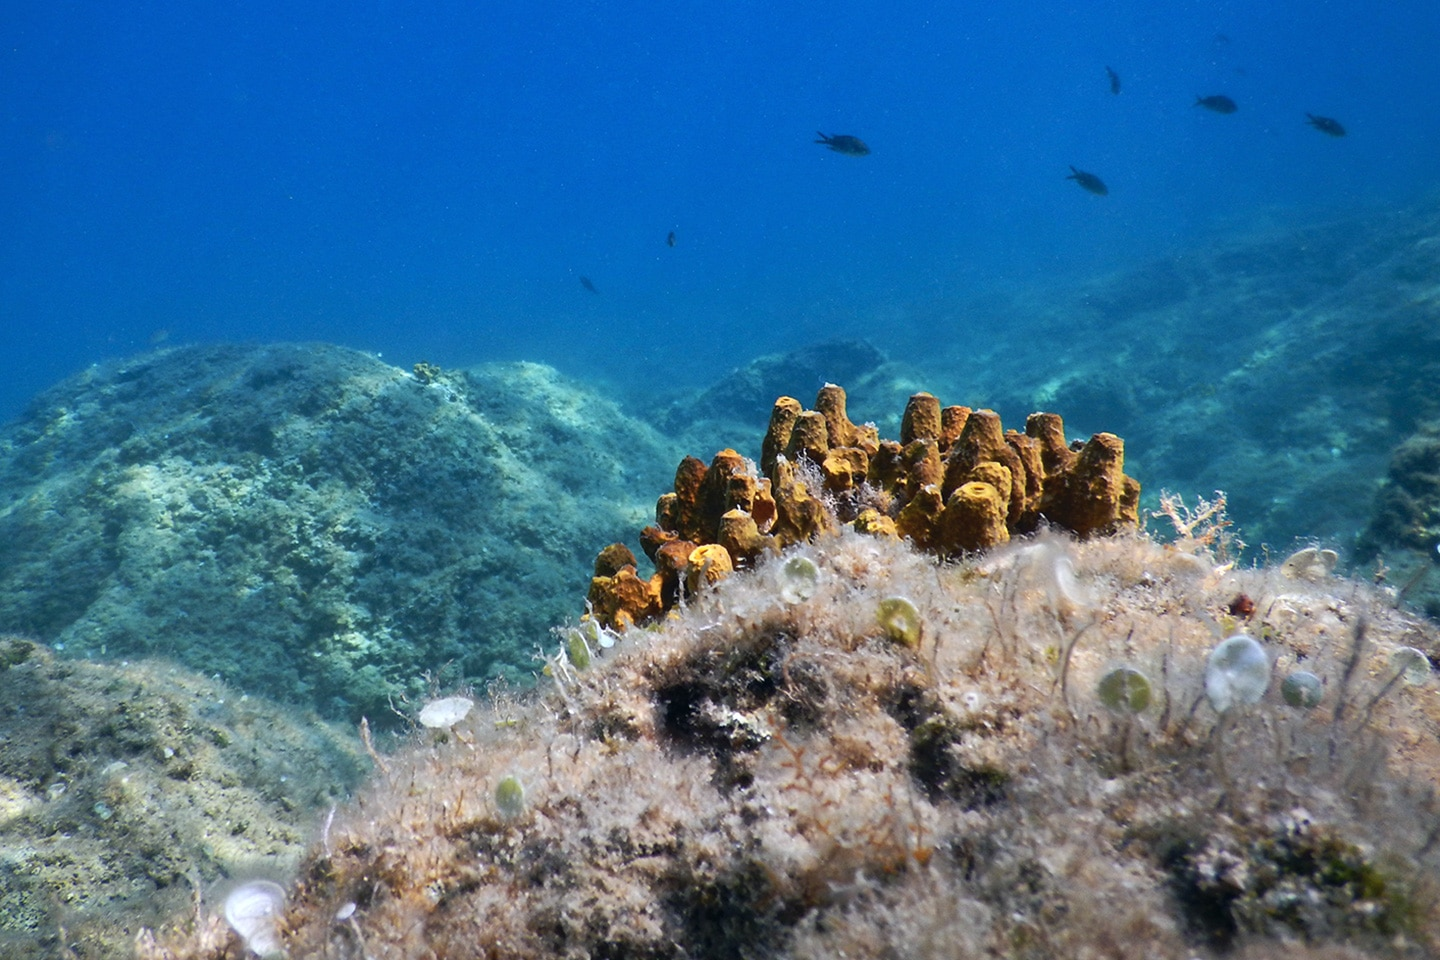 Corals and fish - Krk Island